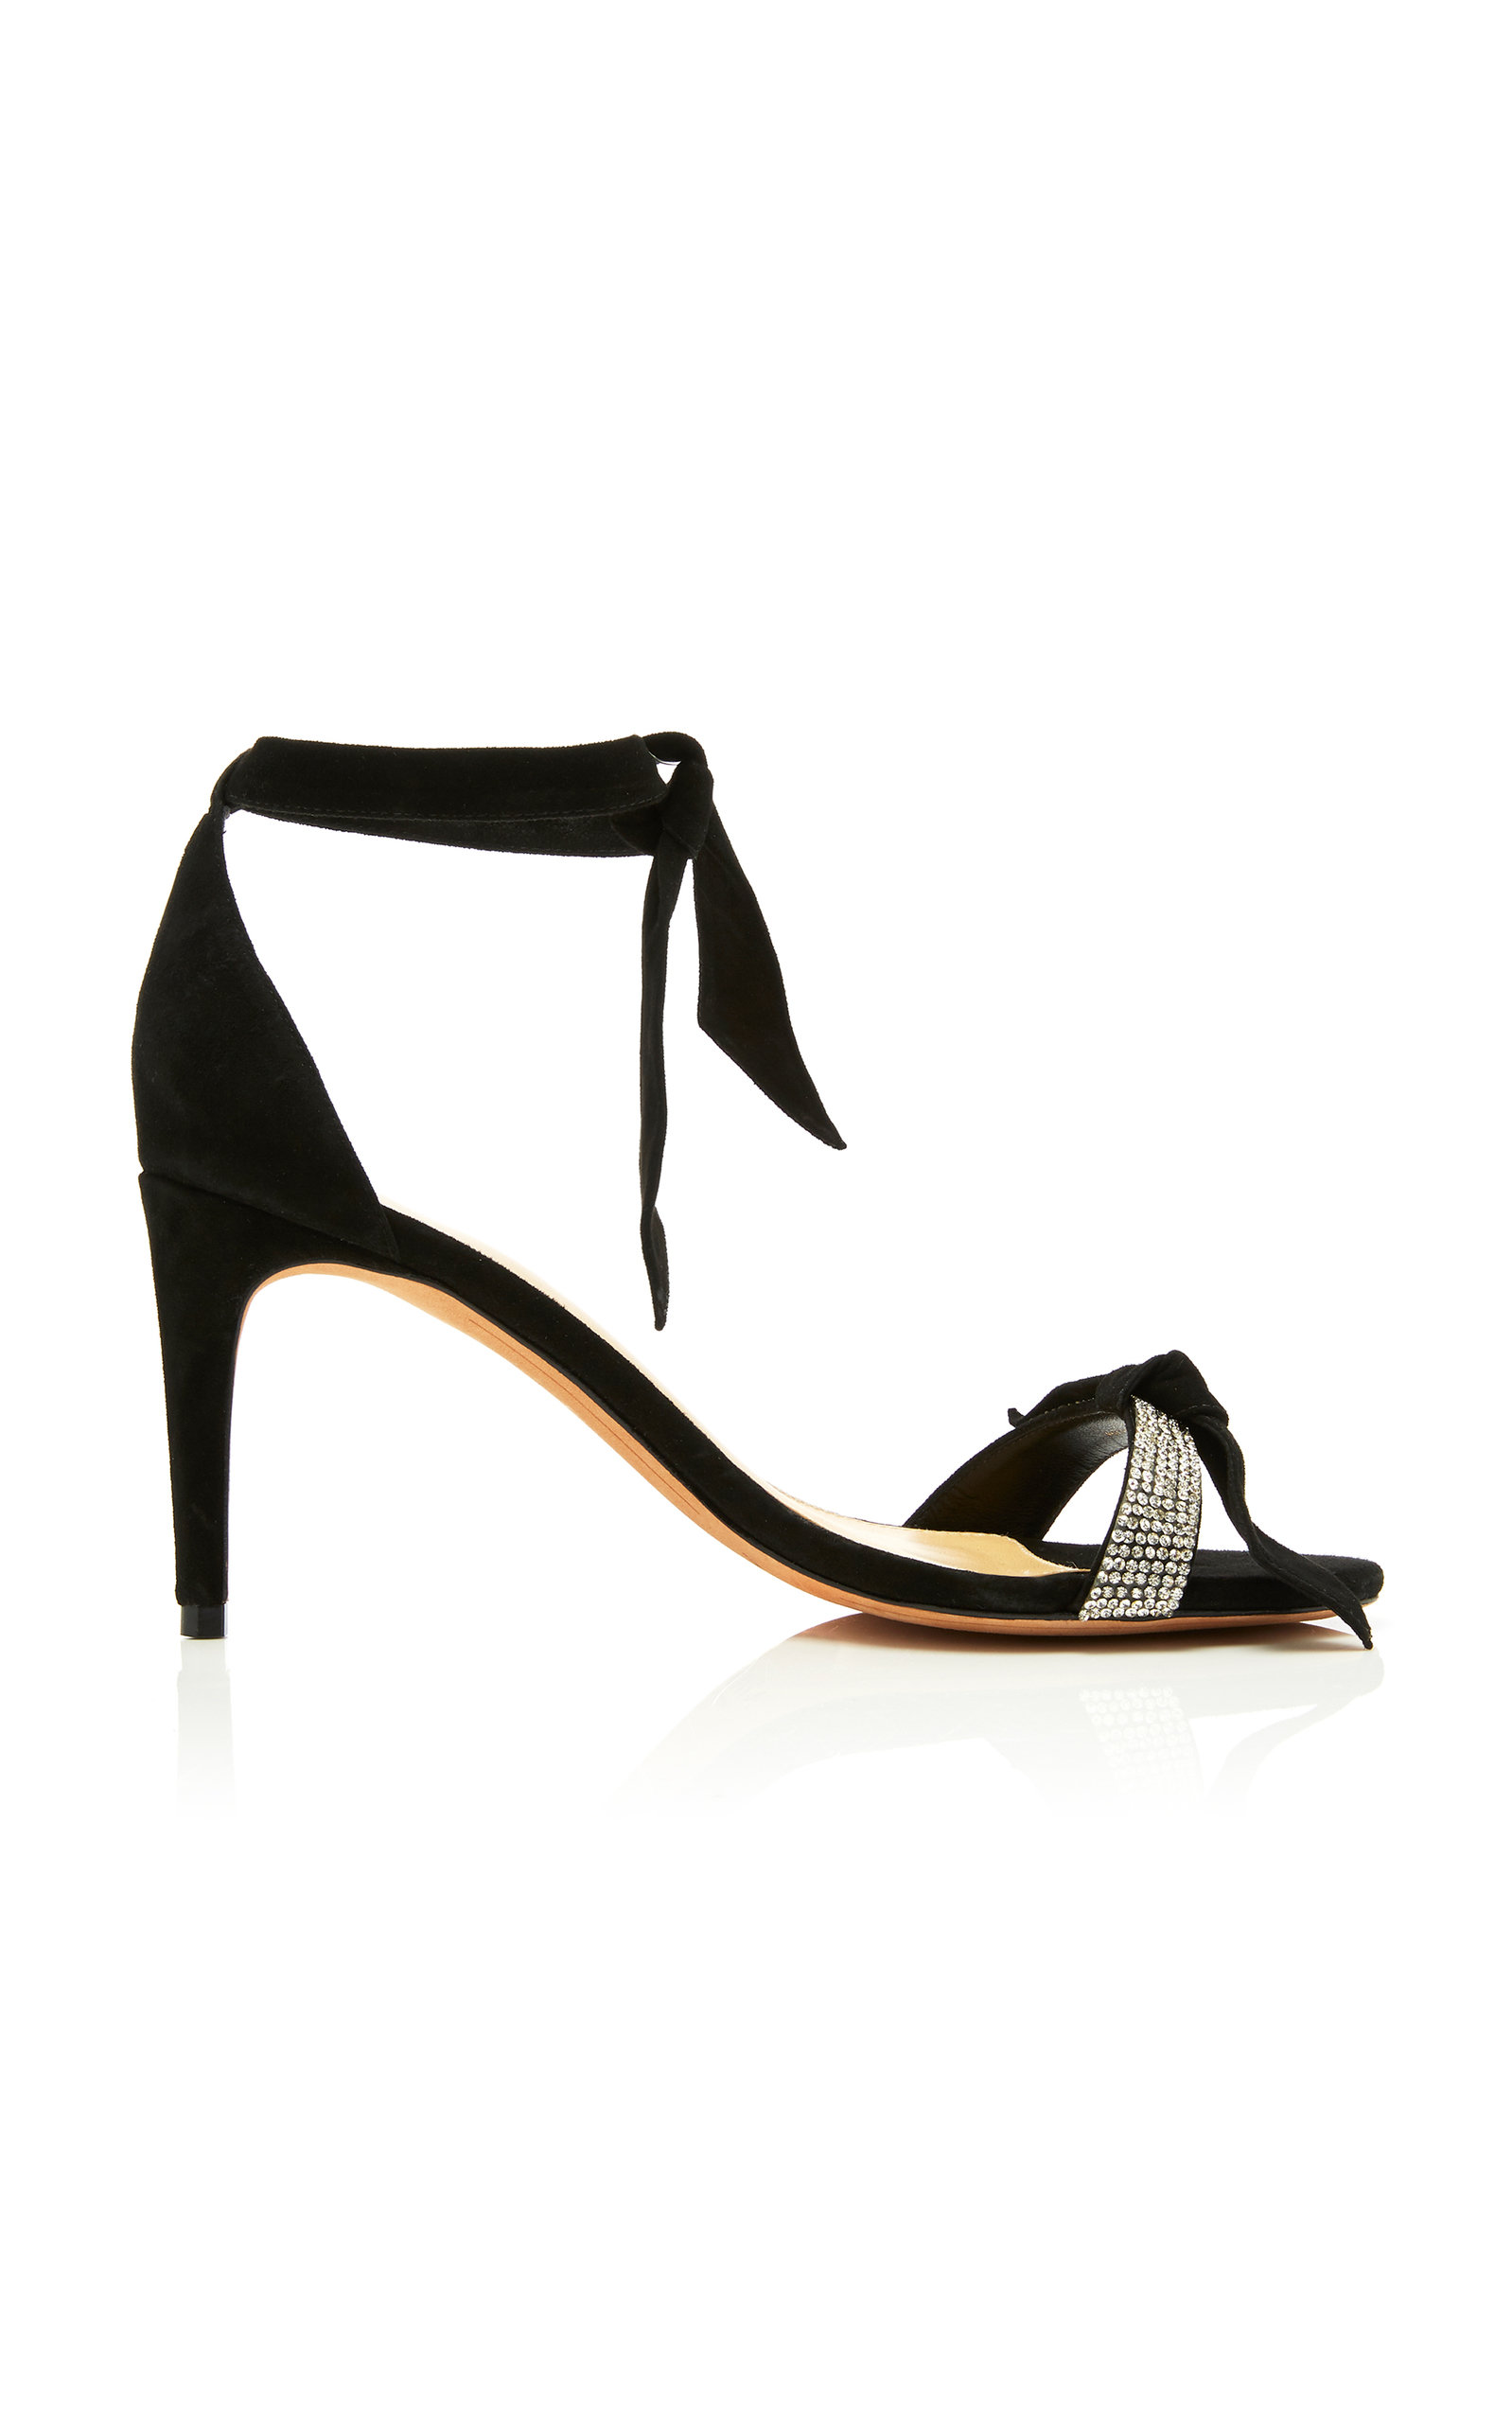 ALEXANDRE BIRMAN | Alexandre Birman Clarita Crystal And Bow-Embellished Suede Sandals | Goxip